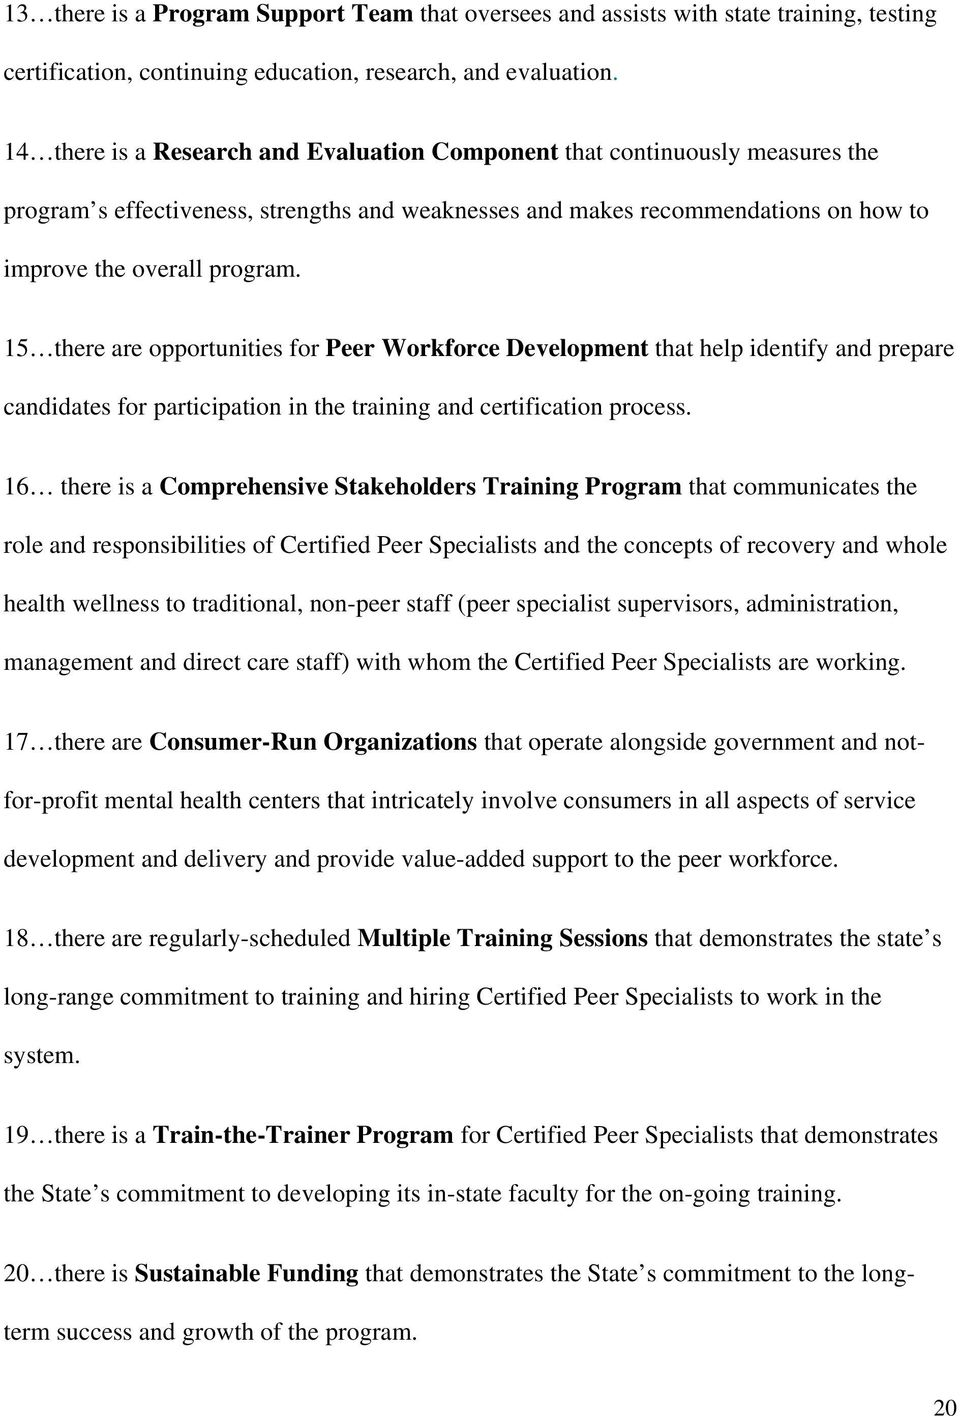 15 there are opportunities for Peer Workforce Development that help identify and prepare candidates for participation in the training and certification process.